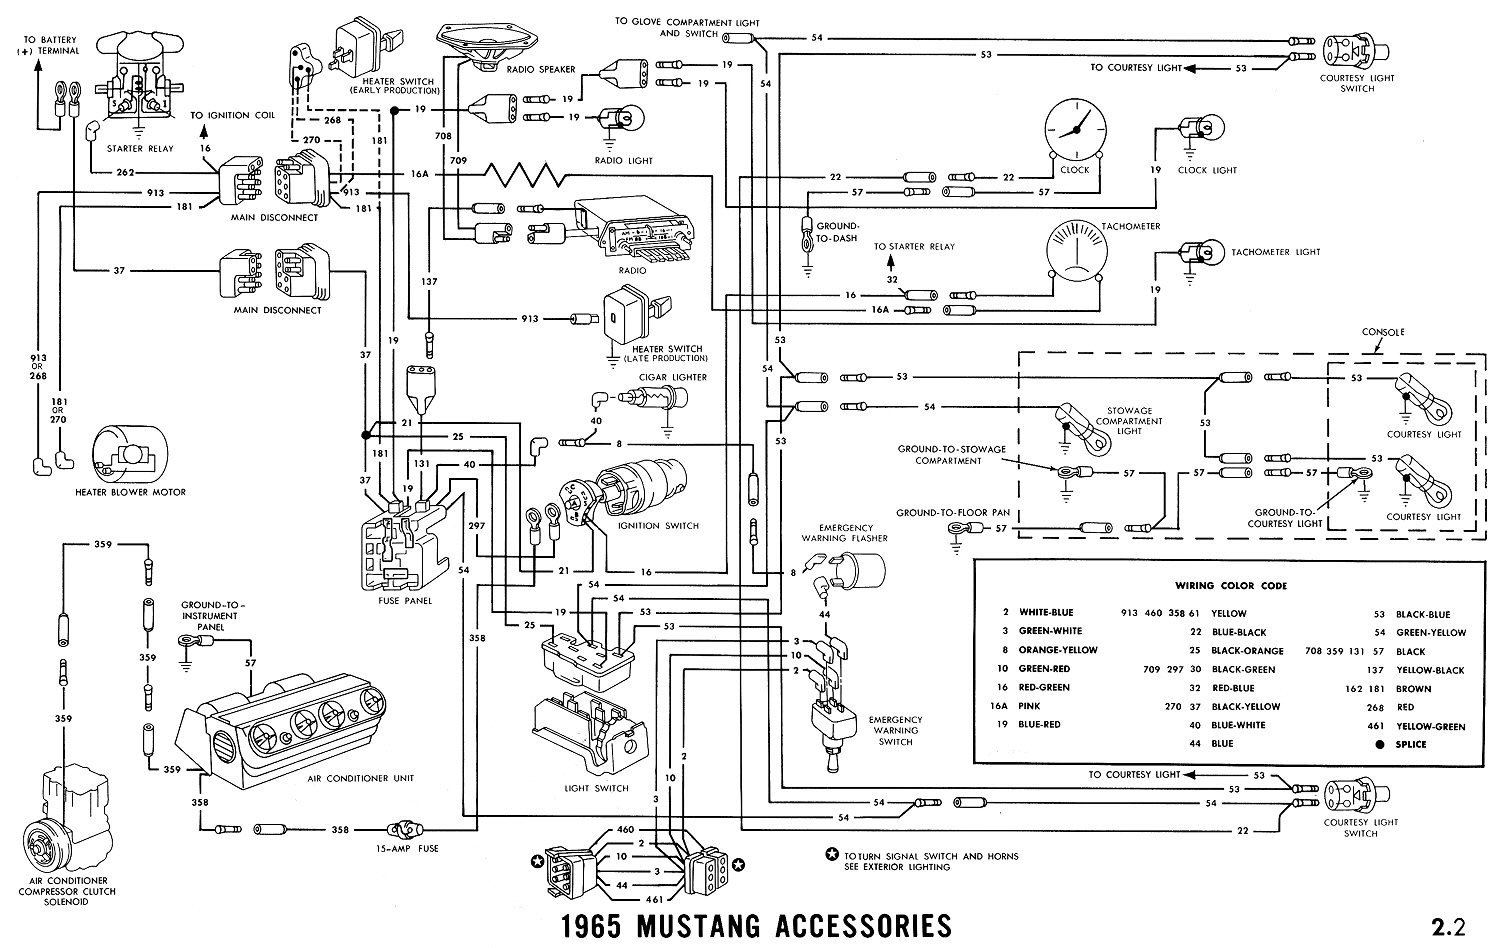 1965i 1965 mustang wiring diagrams average joe restoration mustang wiring harness diagram at suagrazia.org